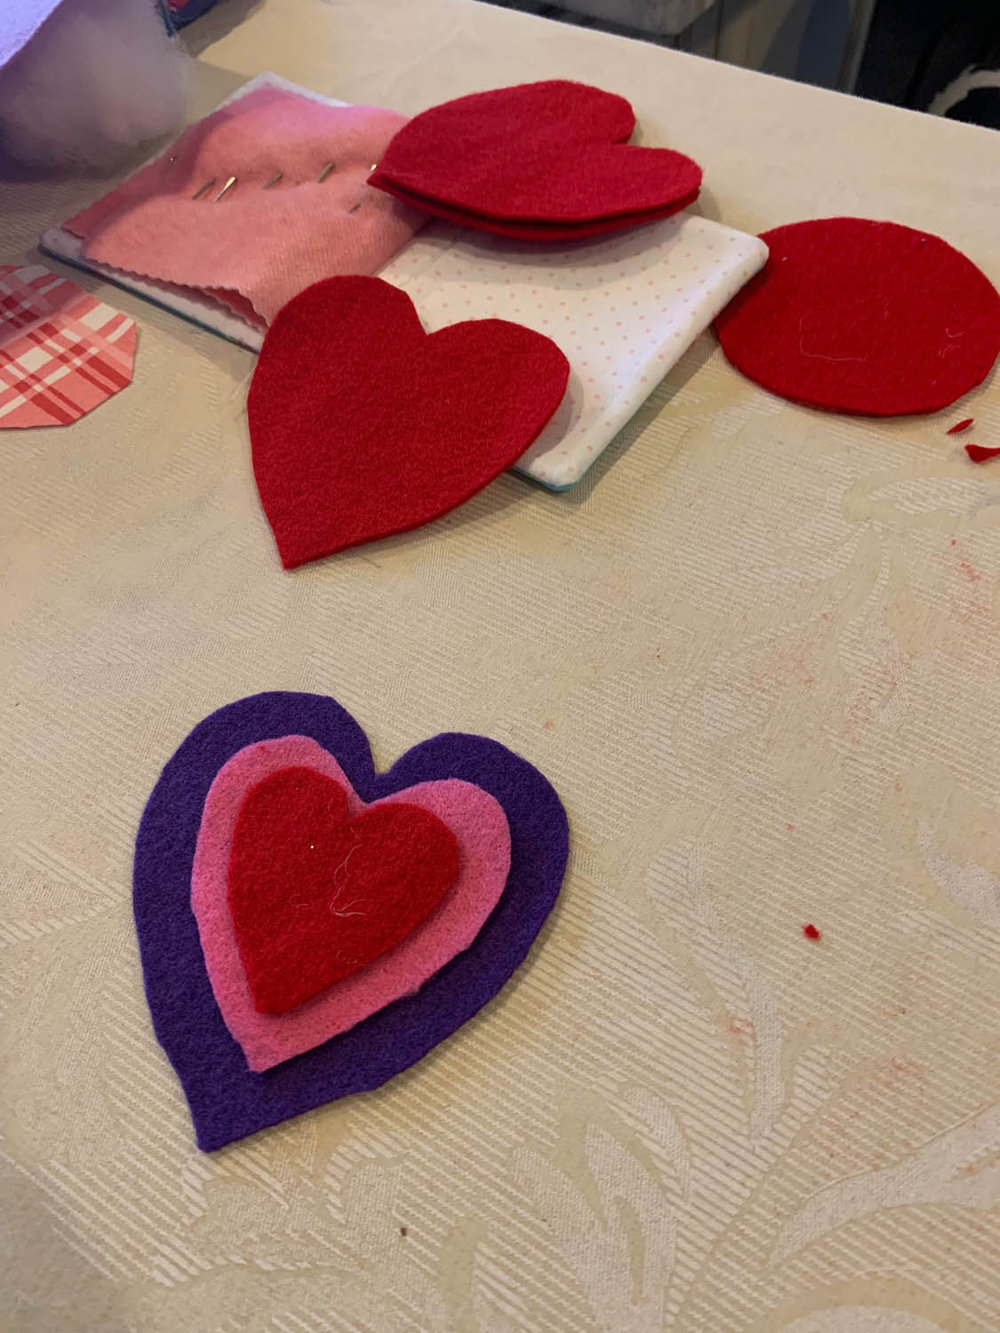 layered felt heart shapes in red pink and purple with a needlebook